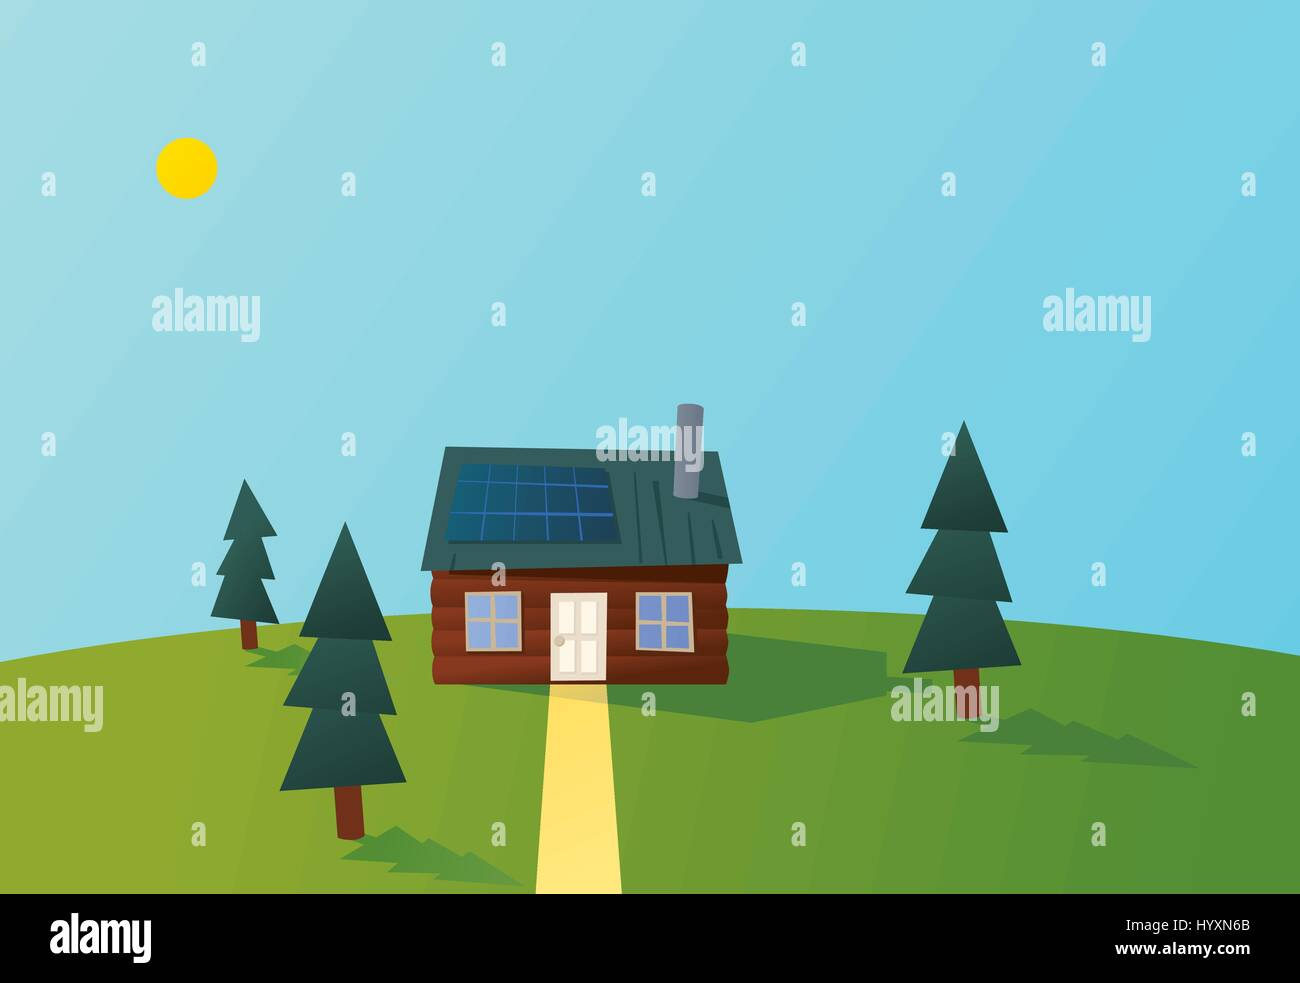 Log cabin in the forest with solar panels on the roof. - Stock Vector